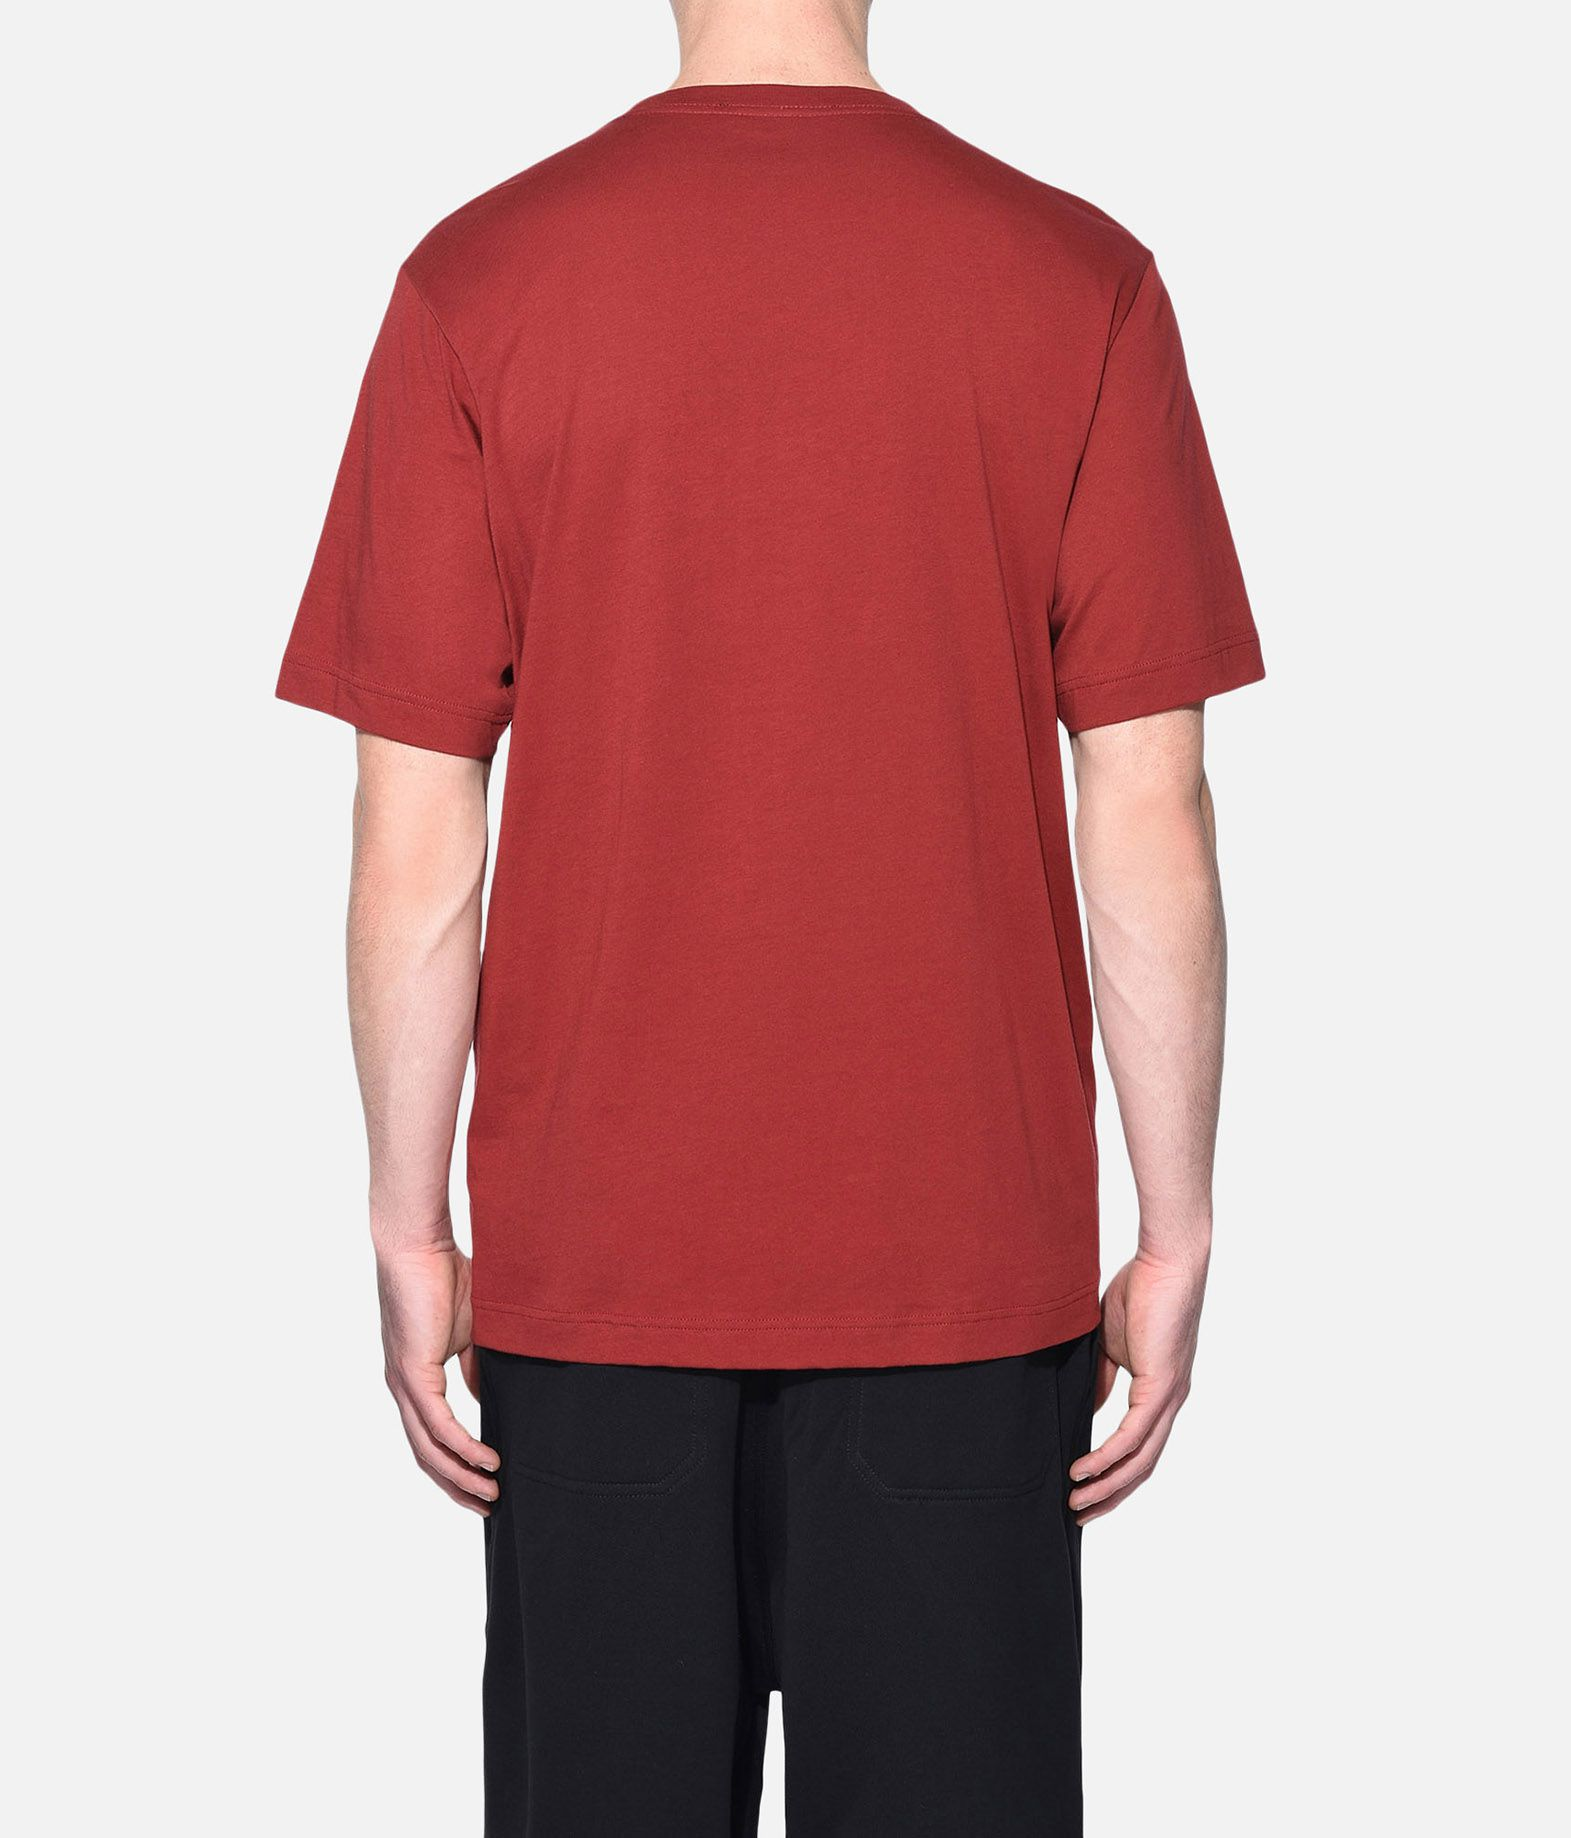 Y-3 Y-3 Stacked Logo Tee T シャツ メンズ d